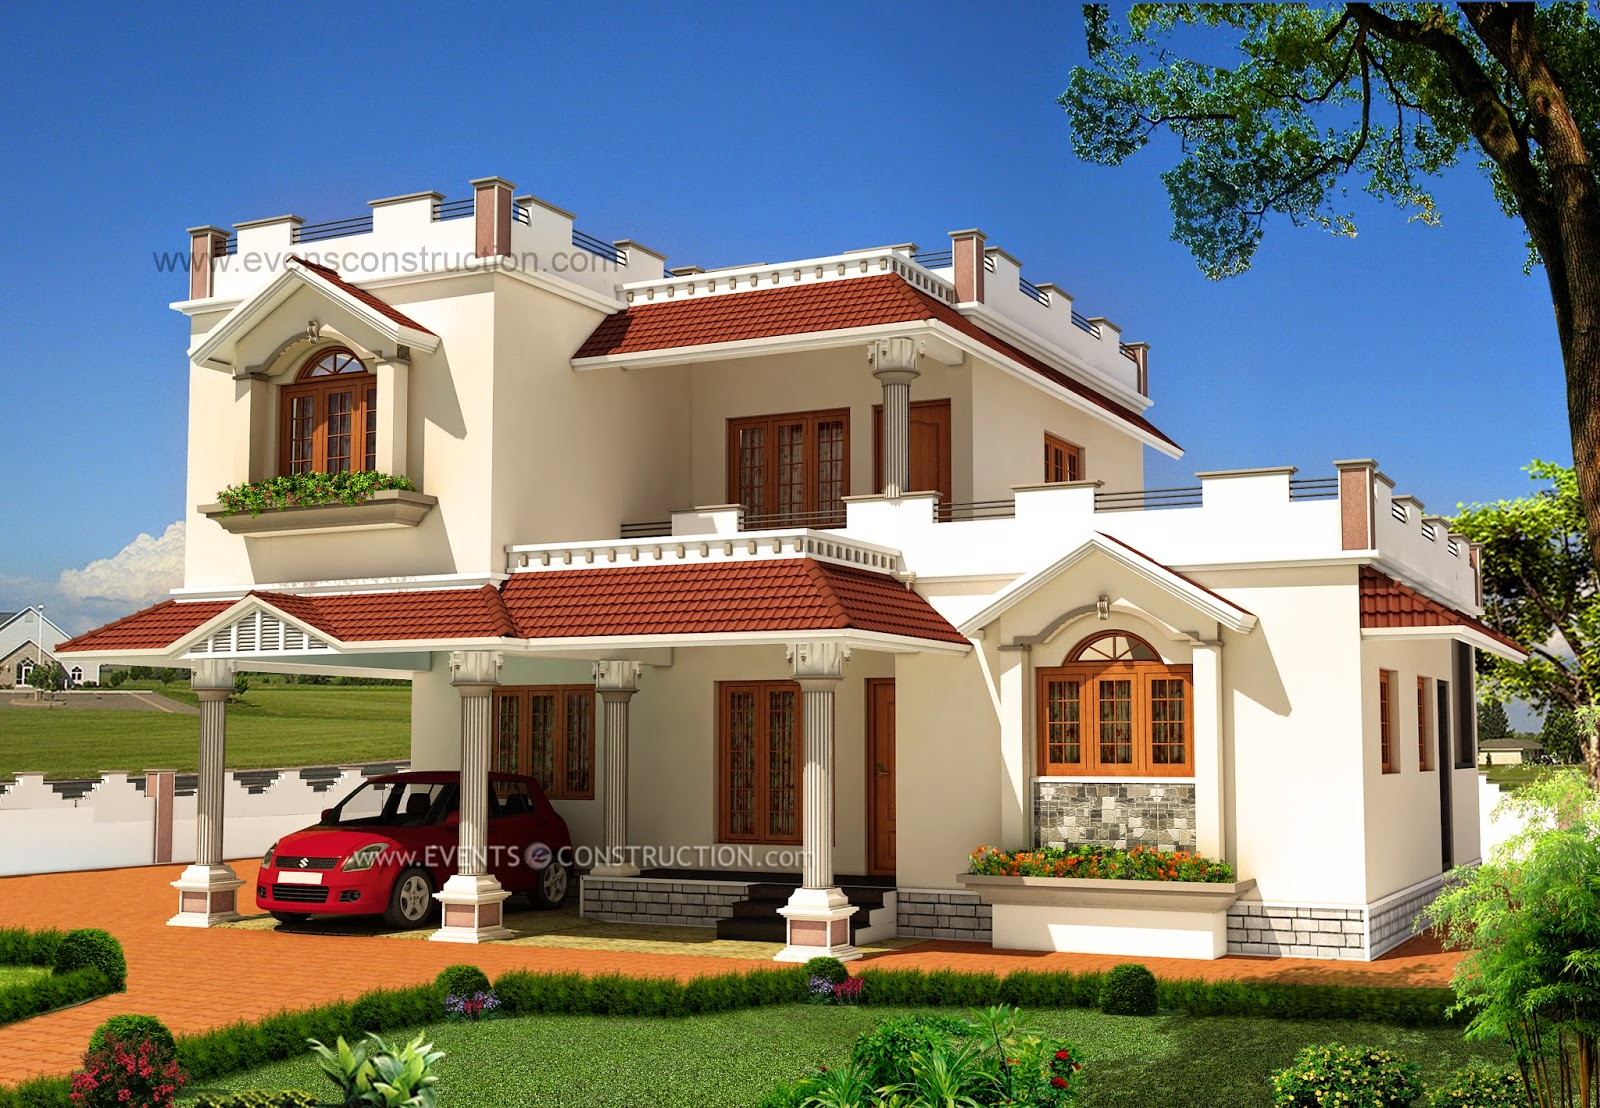 Evens construction pvt ltd exterior design of house in india for Home exterior design india